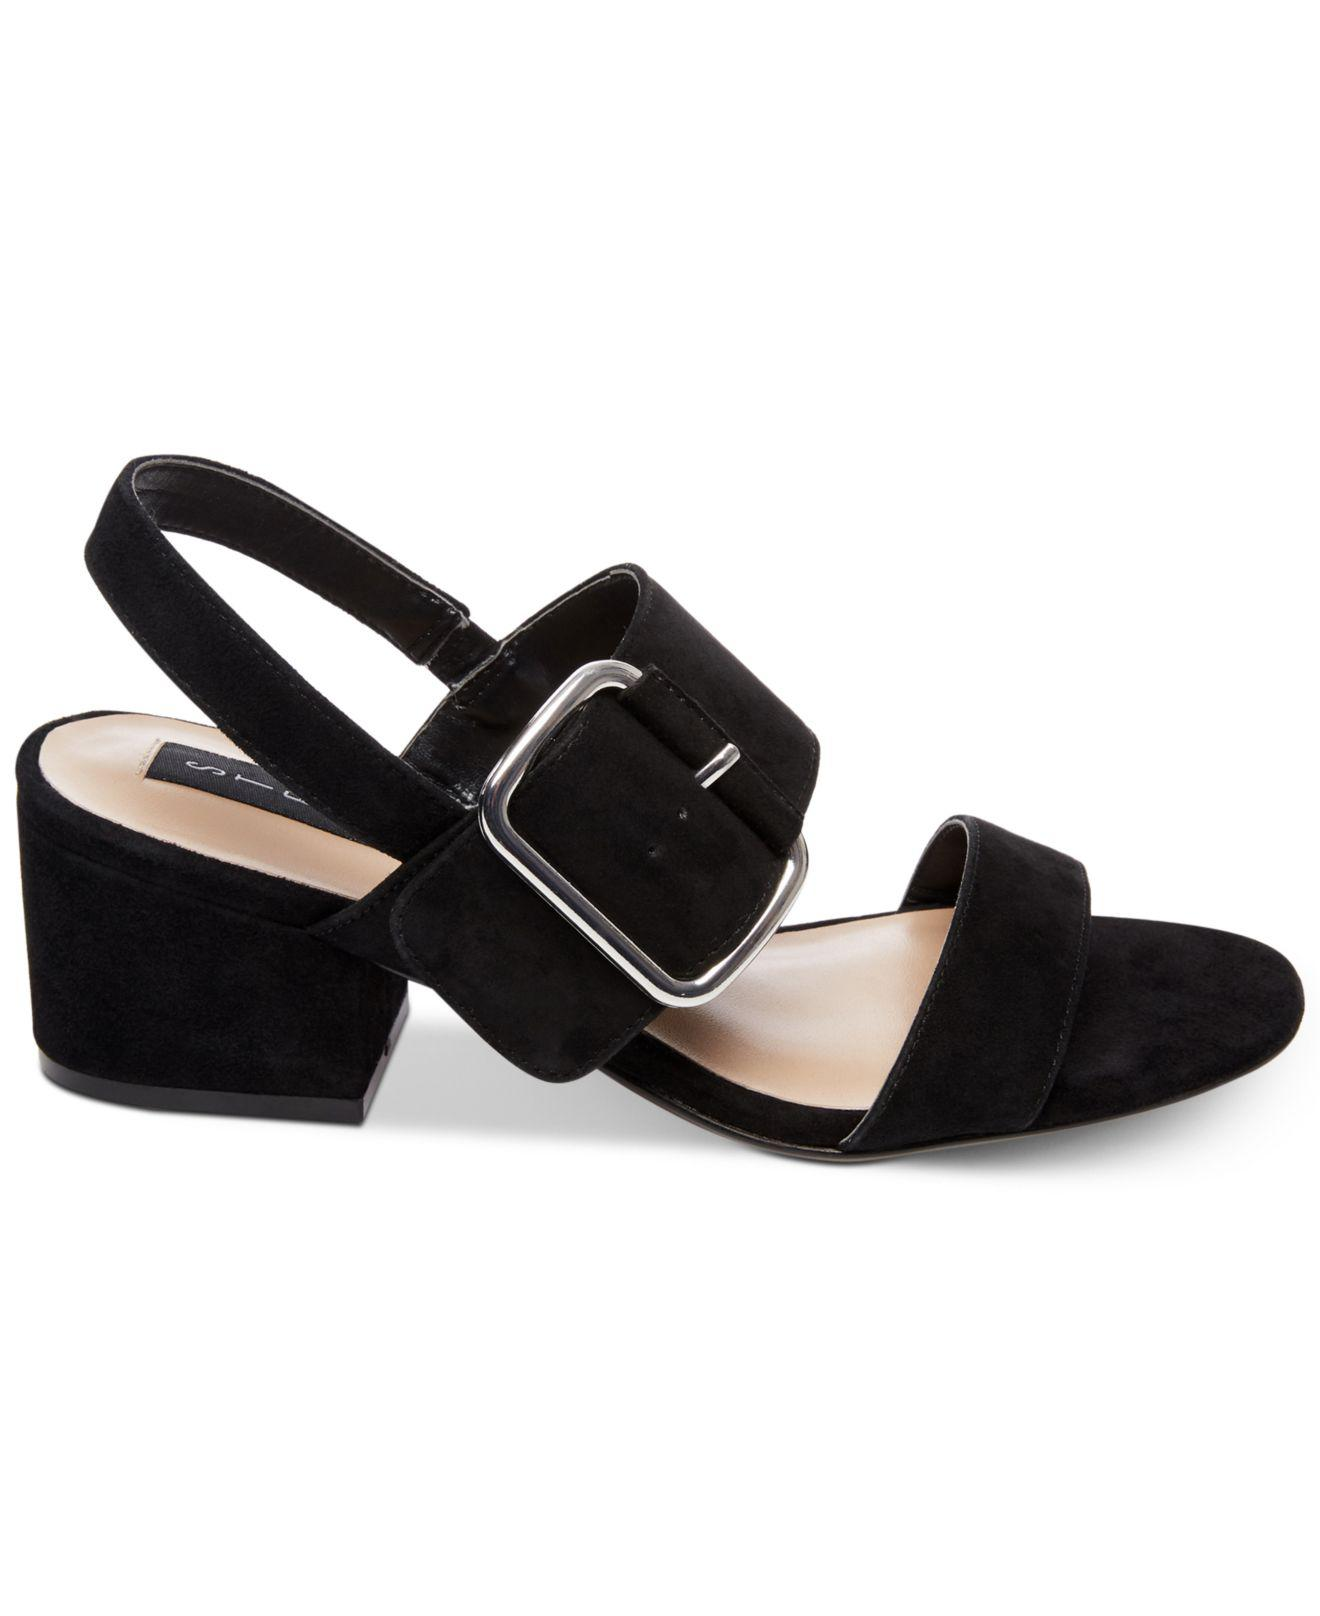 07d94db925a Lyst - Steven by Steve Madden Fond Buckle Dress Sandals in Black